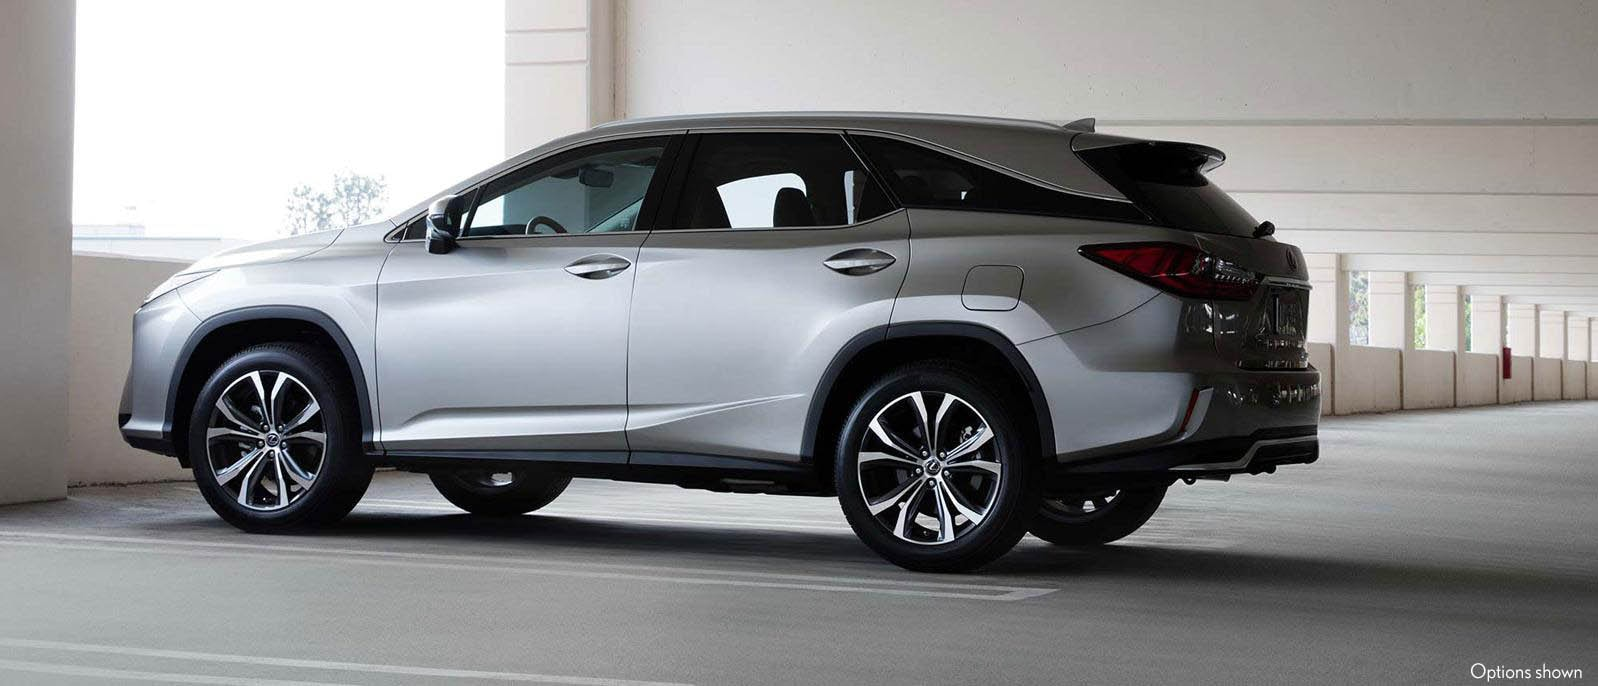 2018 lexus rx 350l for sale in wilkes barre pa for Motor world wilkes barre hours